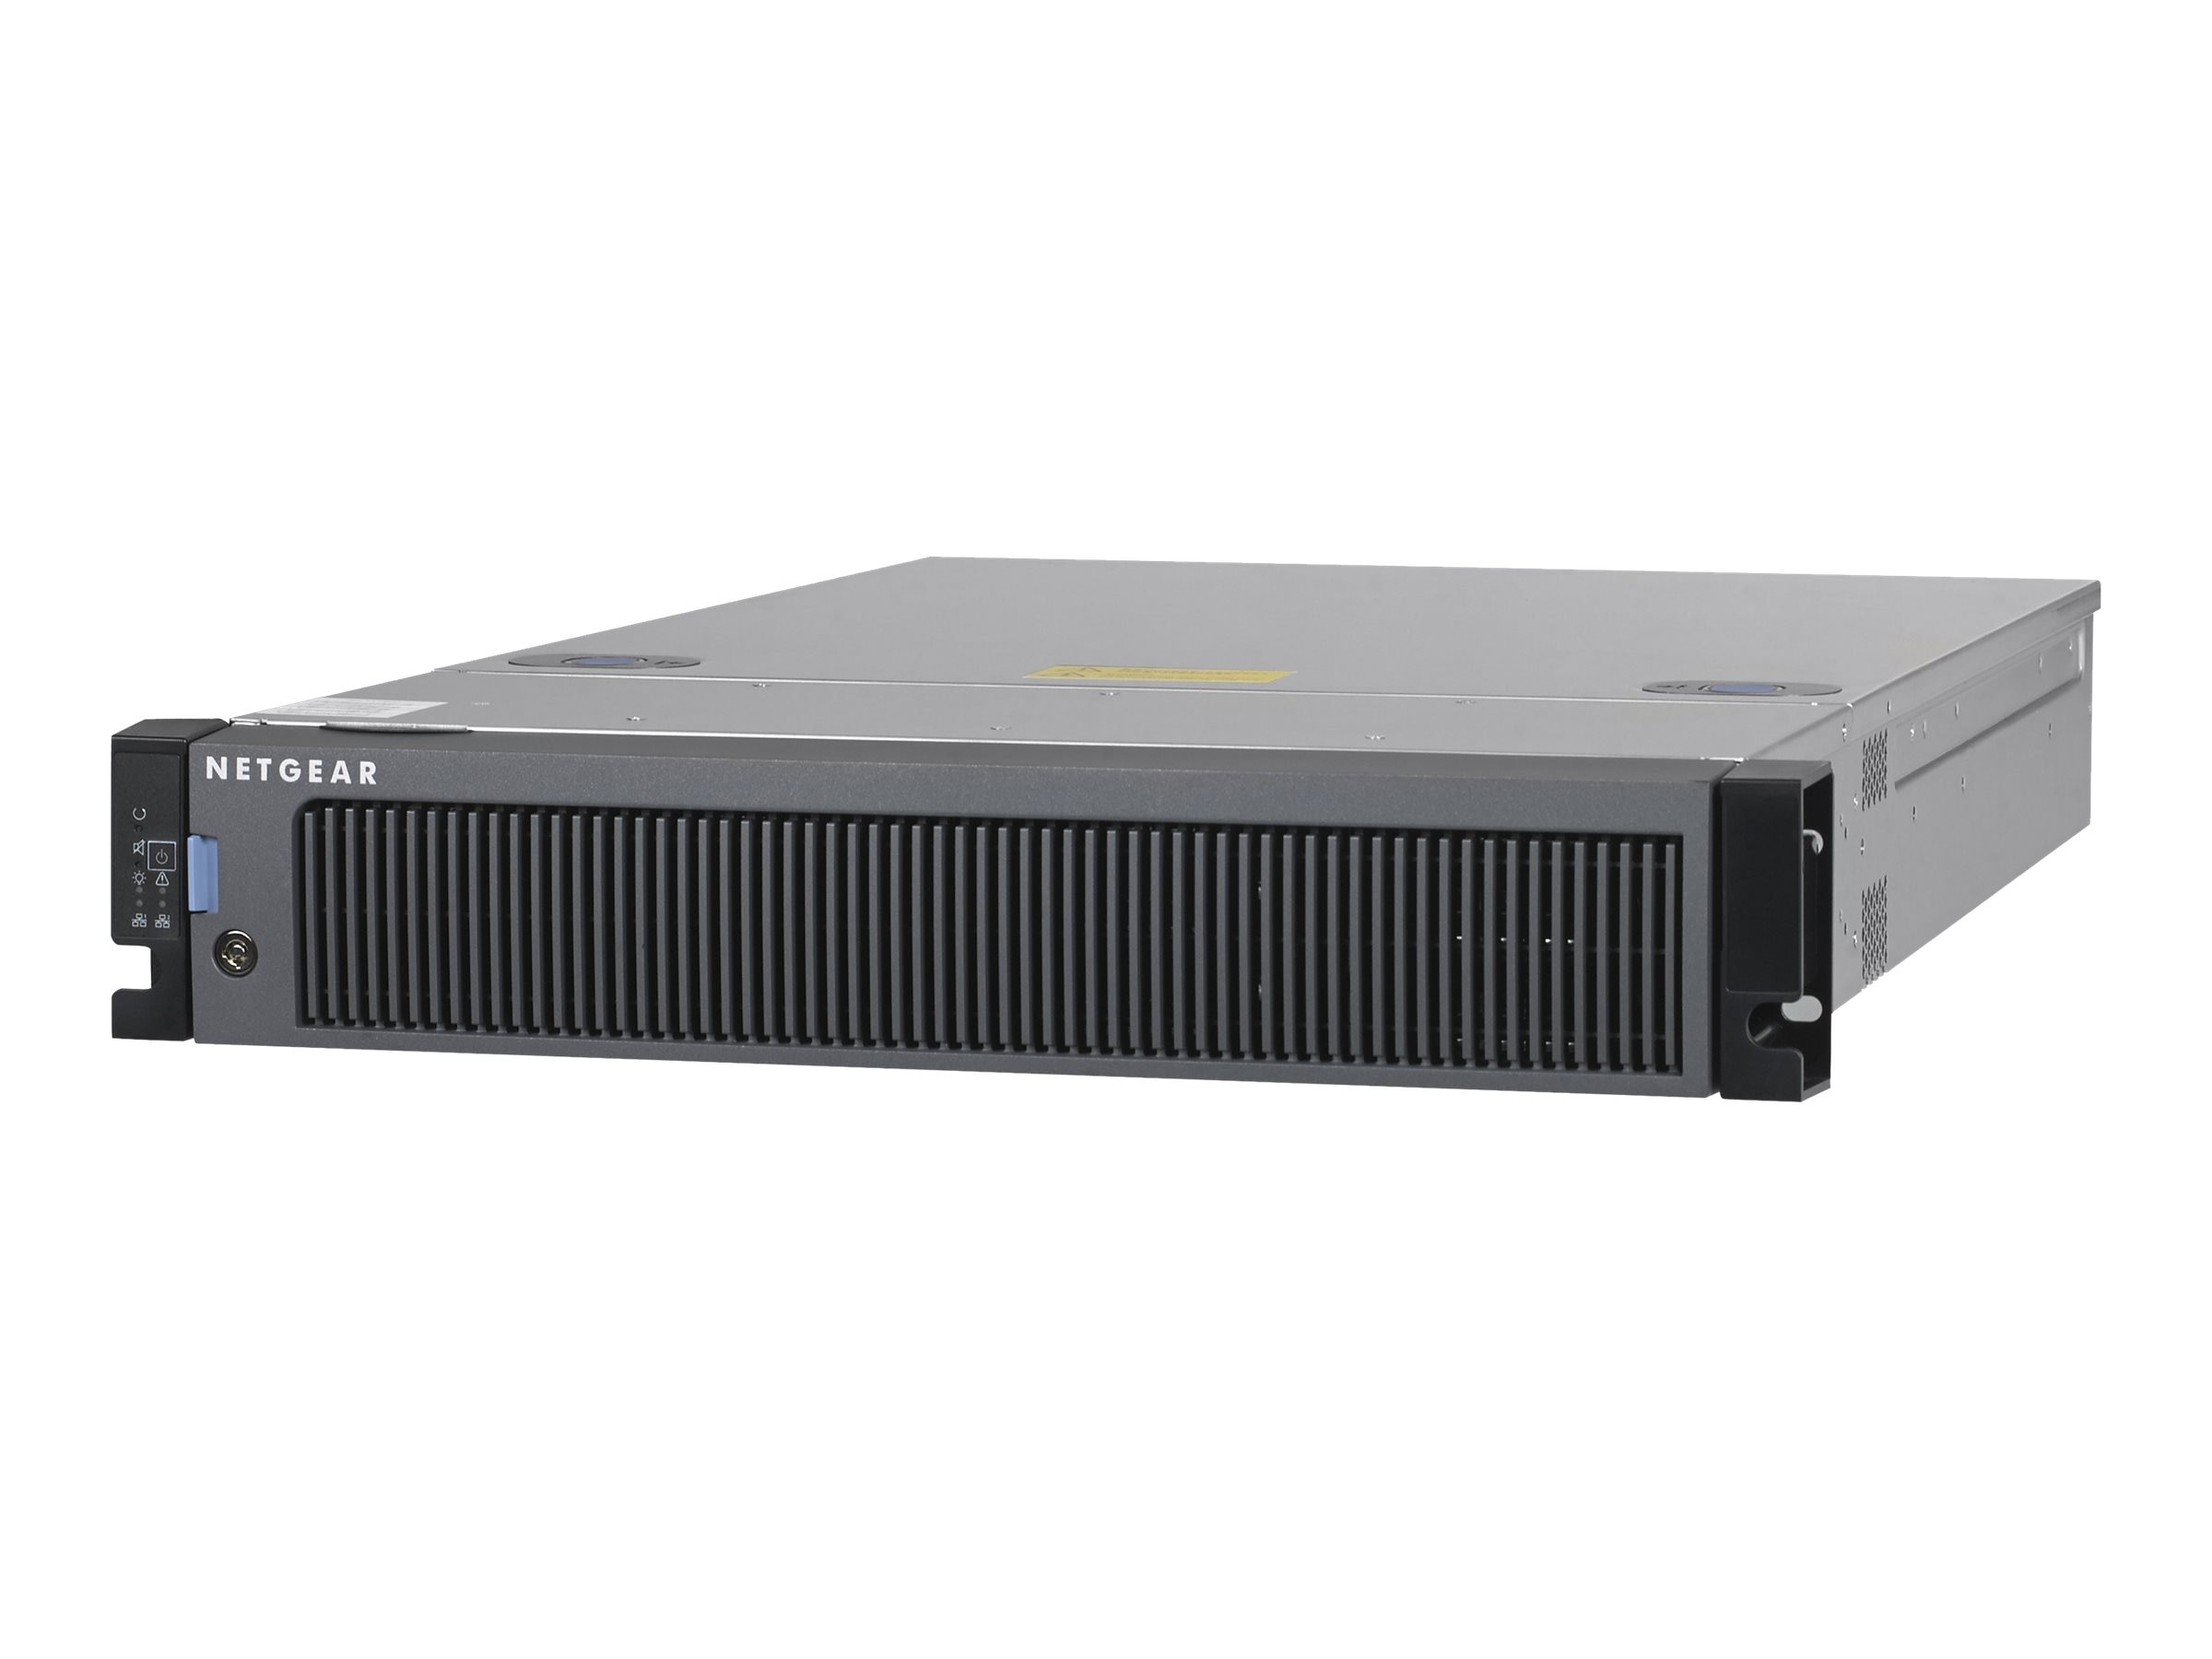 Netgear ReadyNAS 4312S Network Storage w  10Gbps LAN Optical SFP+ & 12x6TB Enterprise Hard Drives, RR4312S6-10000S